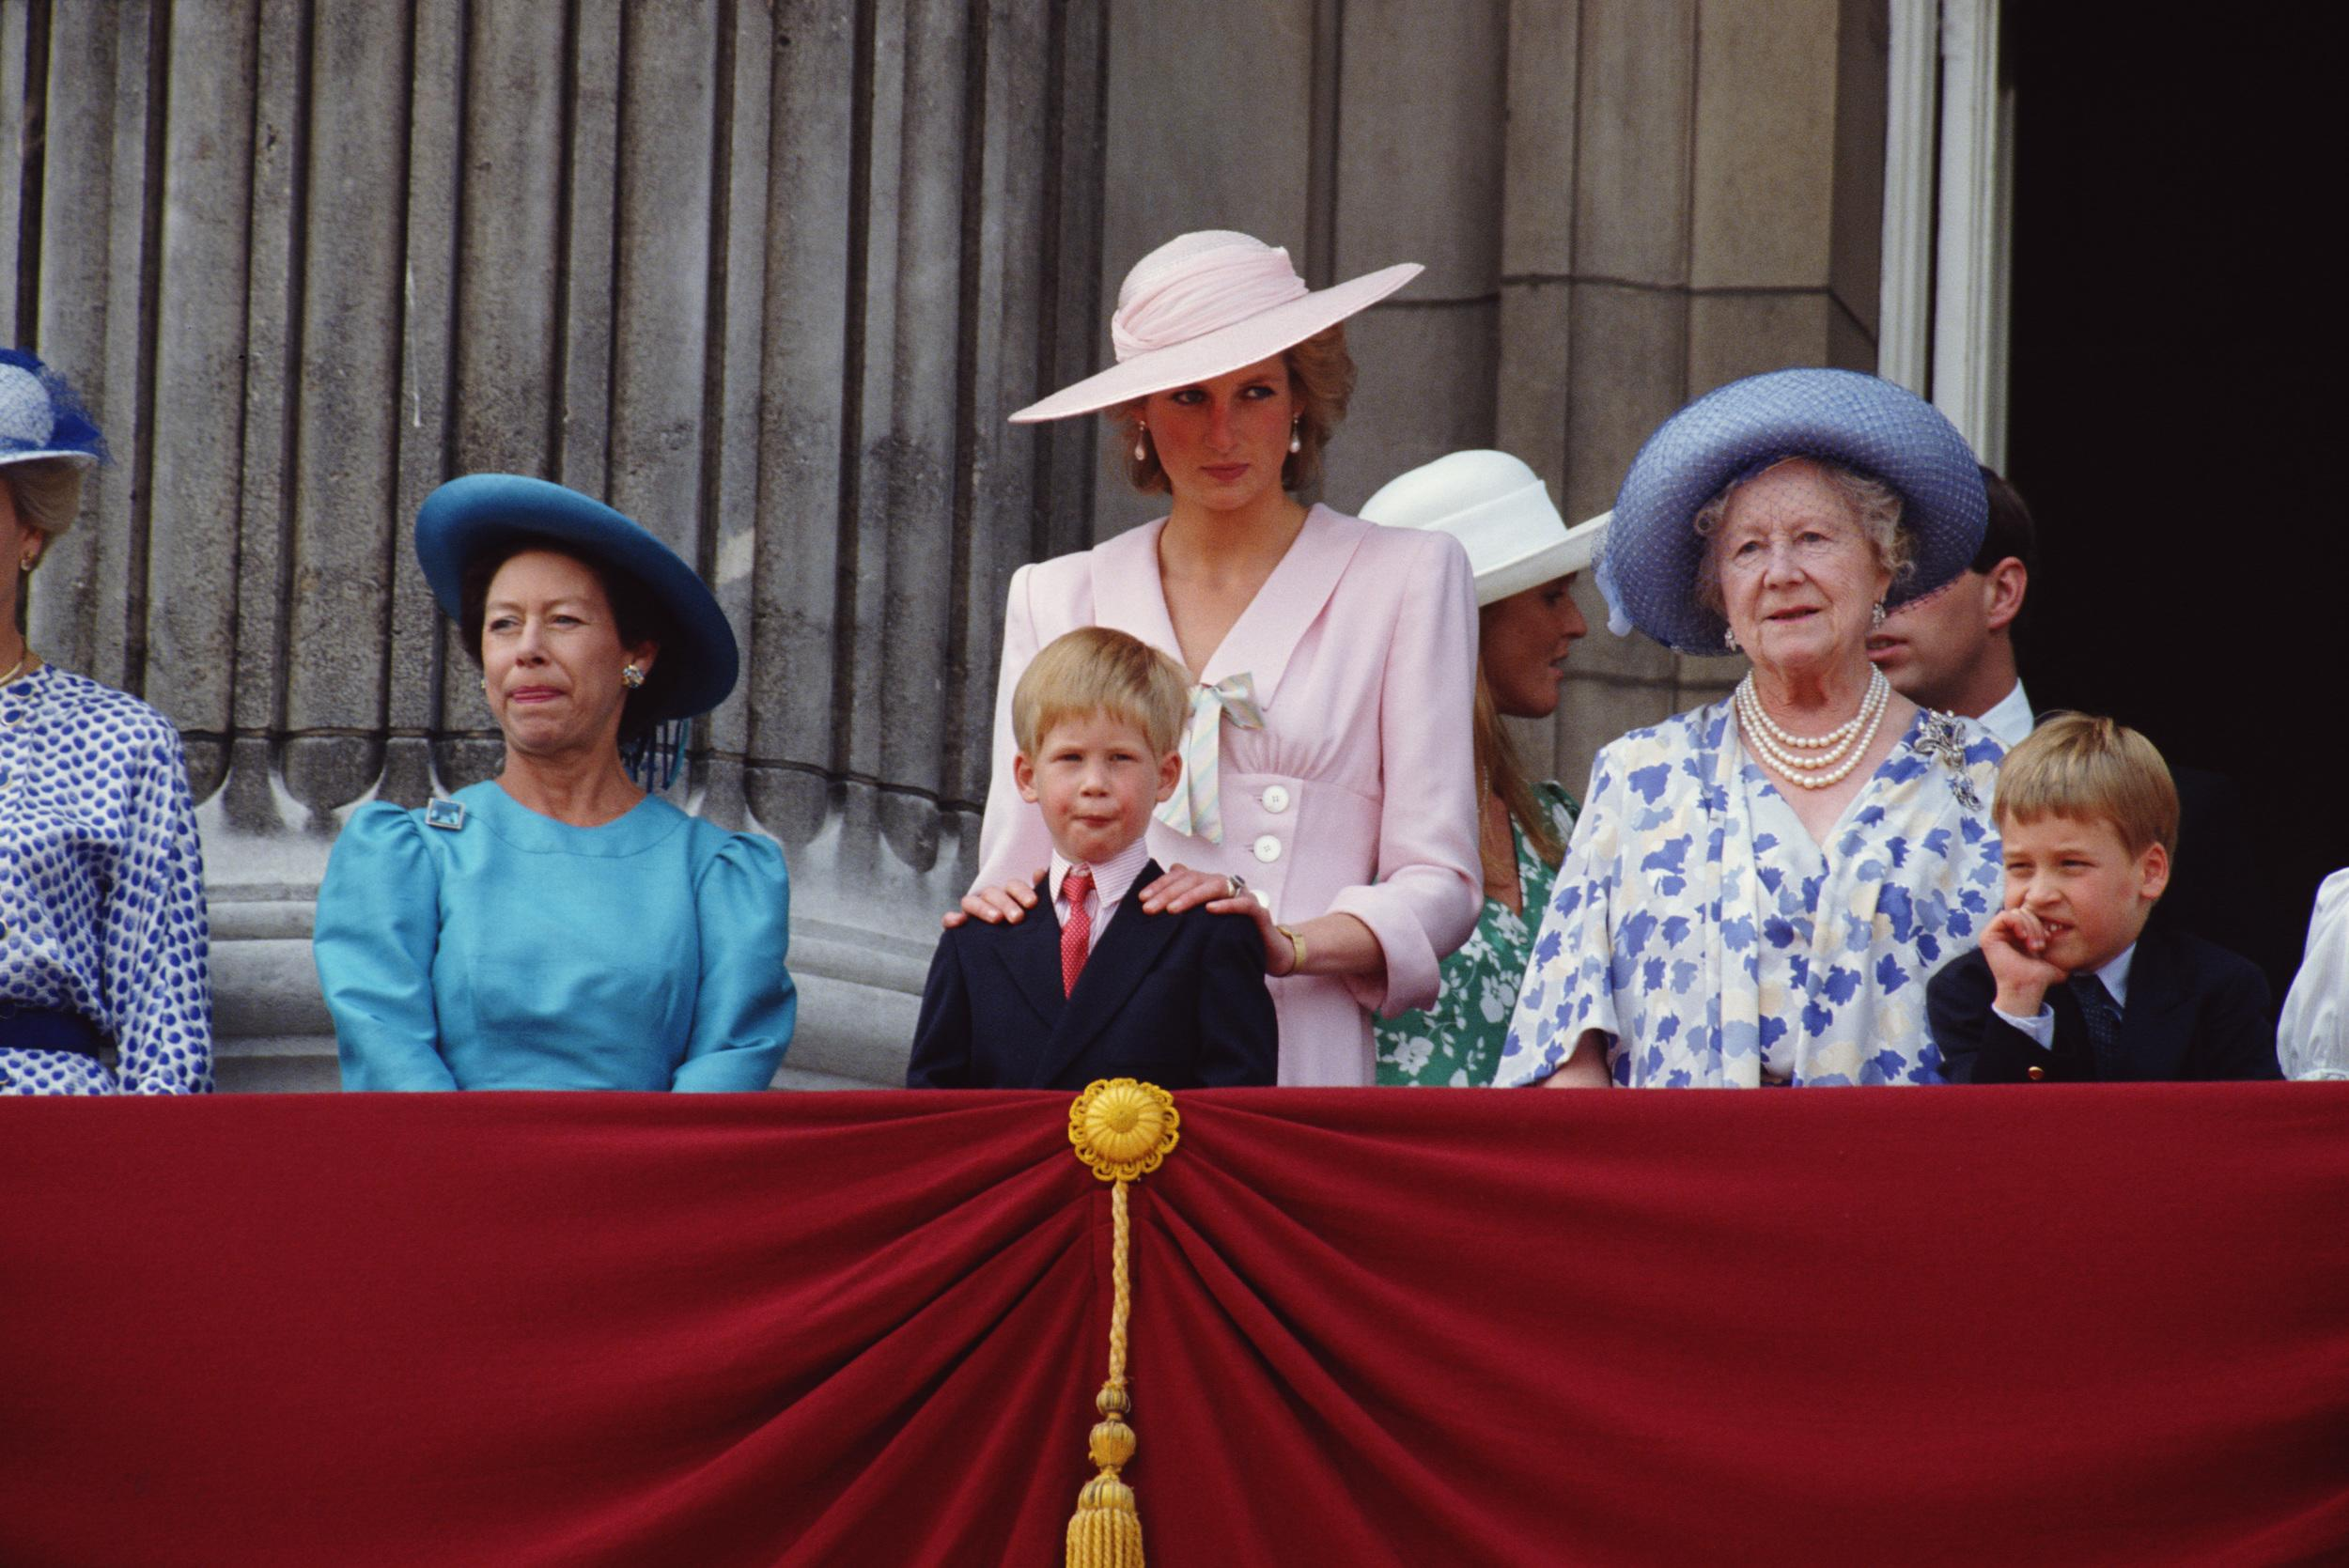 Princess Diana (1961 - 1997, centre) wearing a Victor Edelstein dress as she watches the Trooping of the Colour from a balcony at Buckingham Palace, London, June 1989. Left to right: Princess Margaret (1930 - 2002), Prince Harry, Diana, the Queen Mother (1900 - 2002) and Prince William. Sarah Ferguson and Prince Andrew can be seen in the background (right). (Photo by Jayne Fincher/Princess Diana Archive/Getty Images)